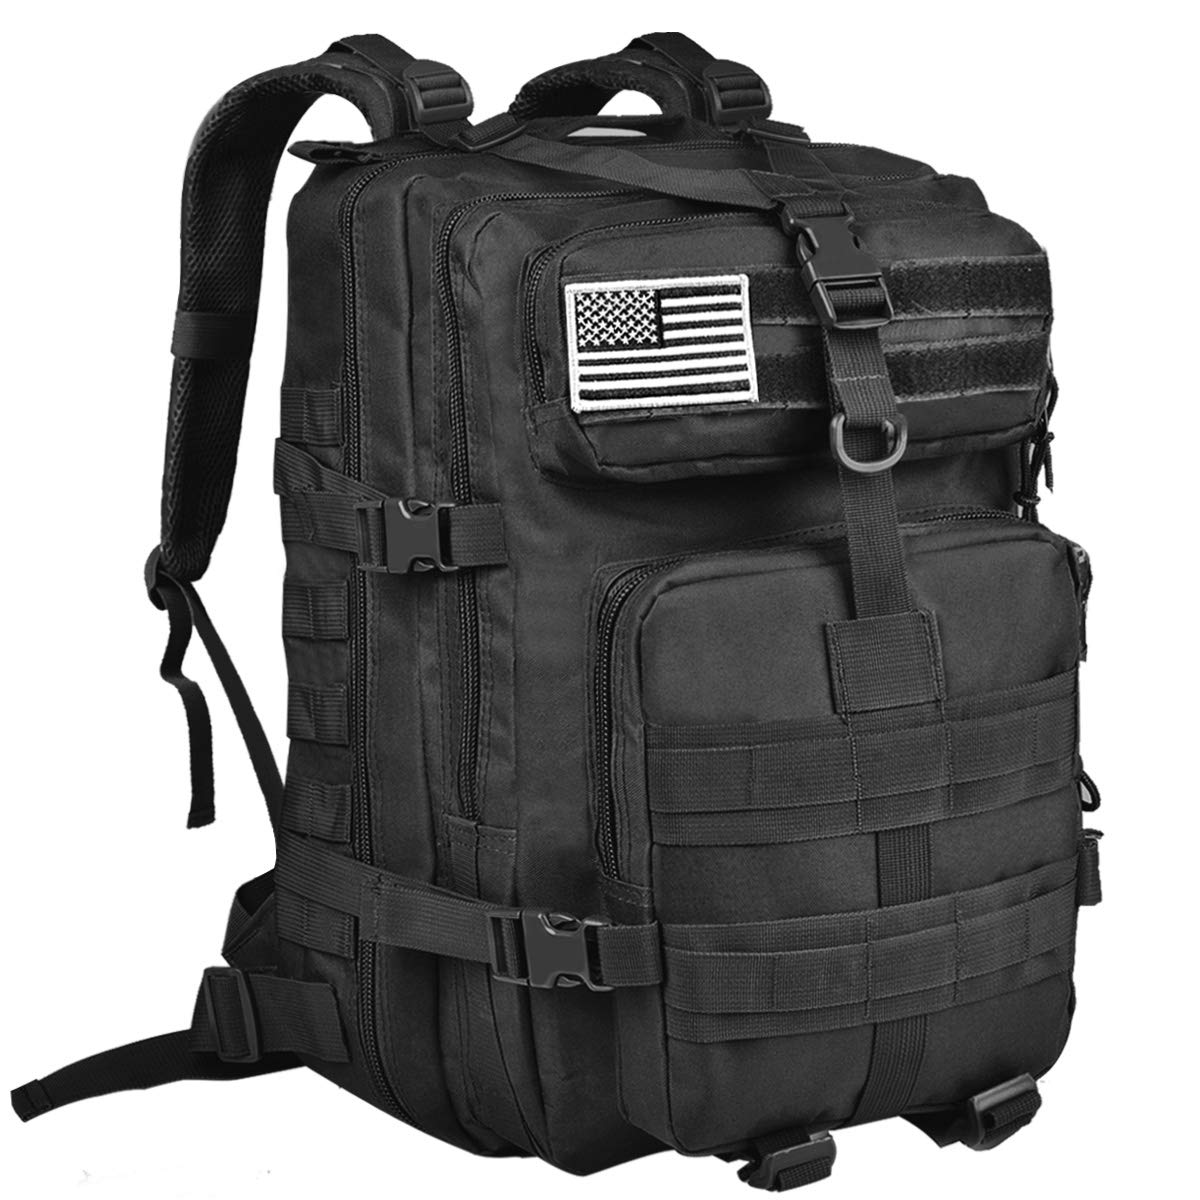 NOOLA 40L Military Tactical Army Backpack 3 Day Pack Molle Bug Out Bag Backpack Rucksacks for Outdoor Hiking Camping Trekking Hunting with Flag Patch Black